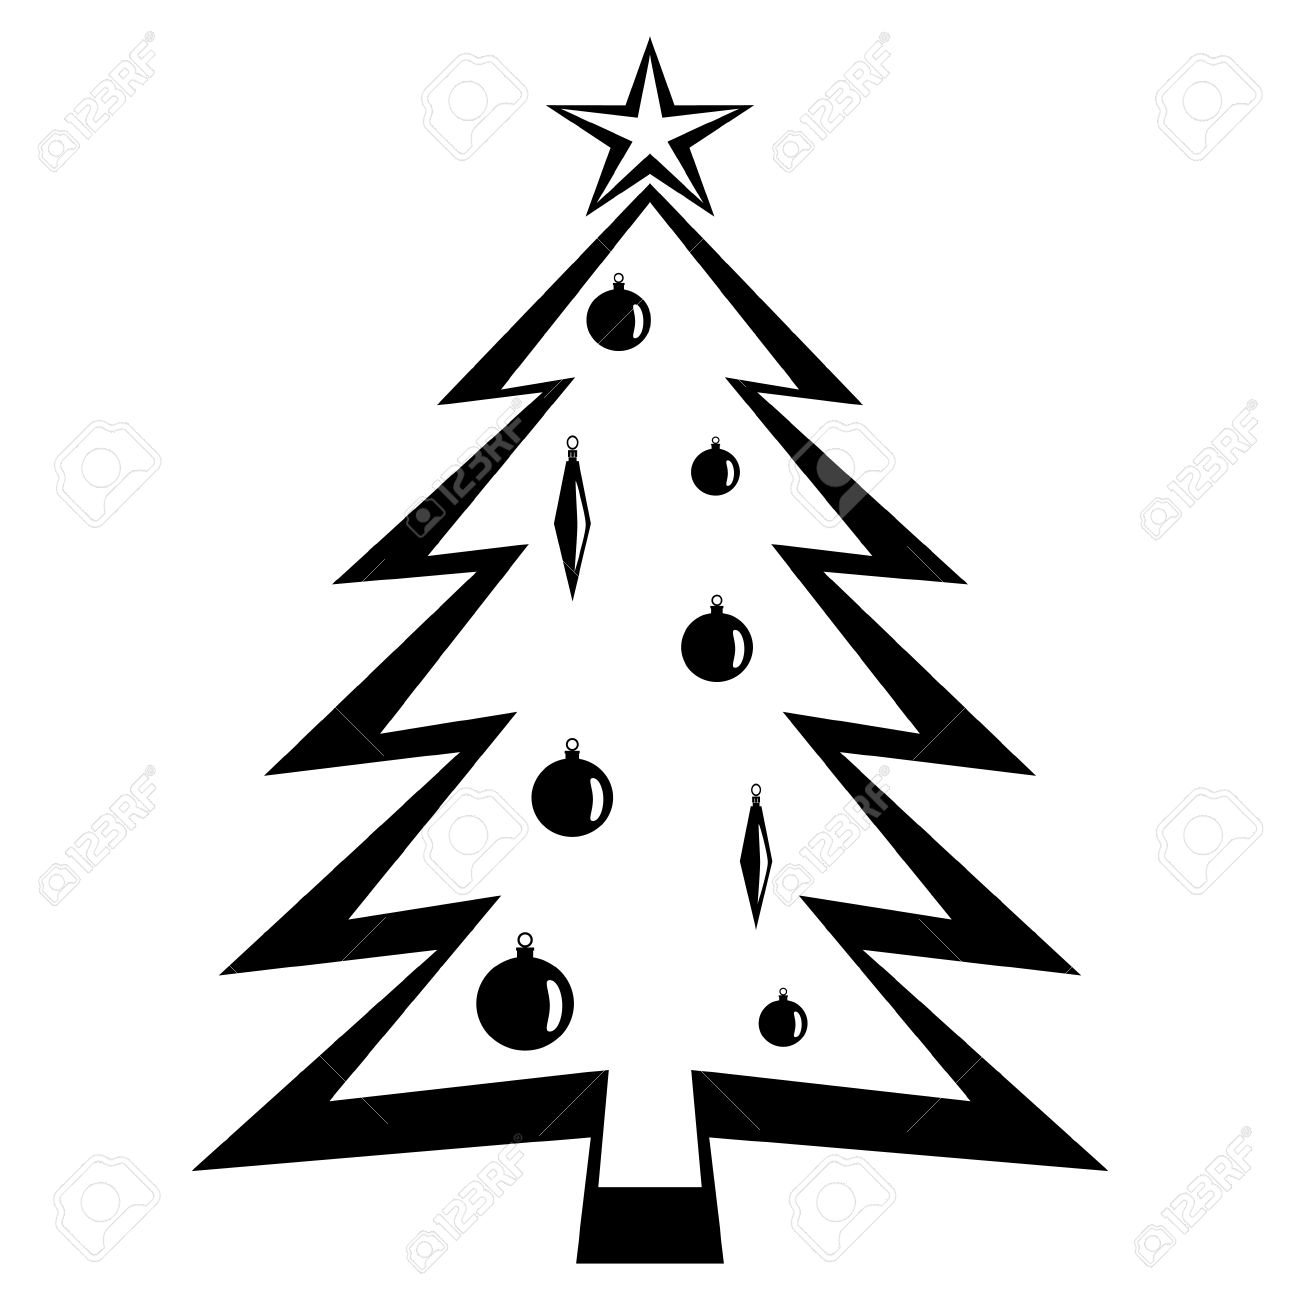 christmas tree black vector illustration royalty free cliparts